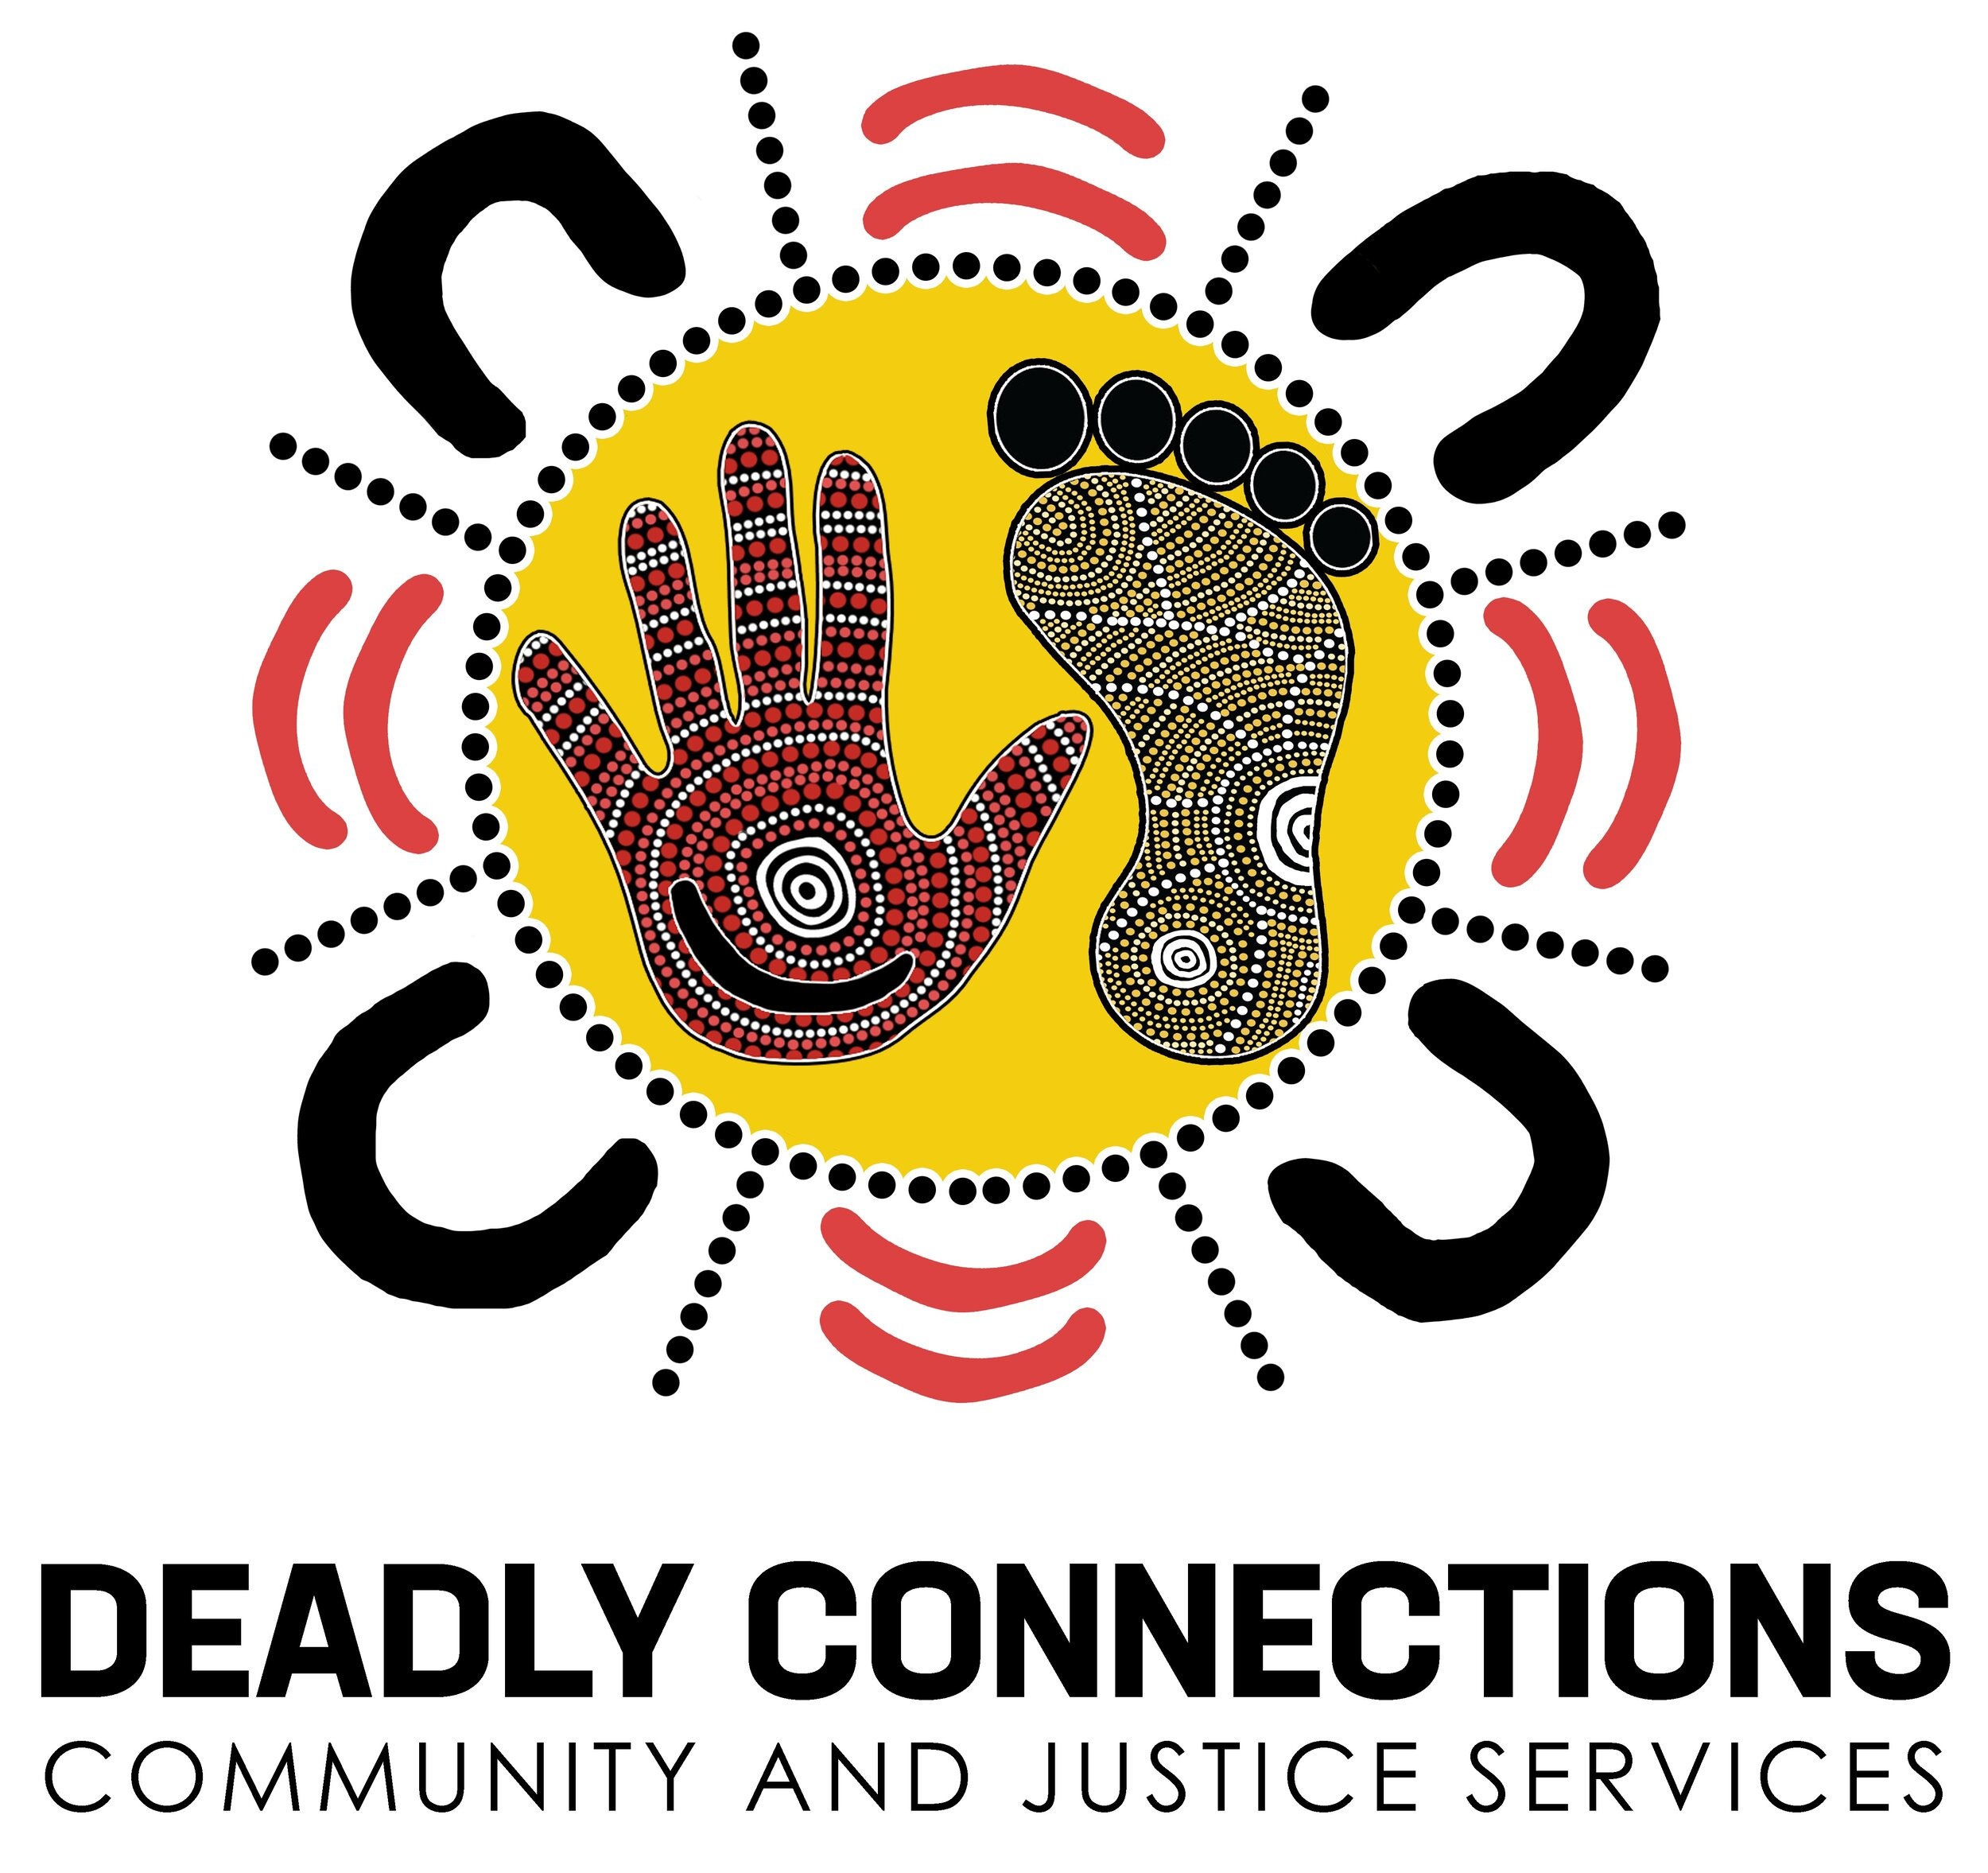 Deadly Connections aims to create change, improve outcomes and empower Aboriginal people by disrupting cycles of disadvantage, trauma and justice system involvement. -